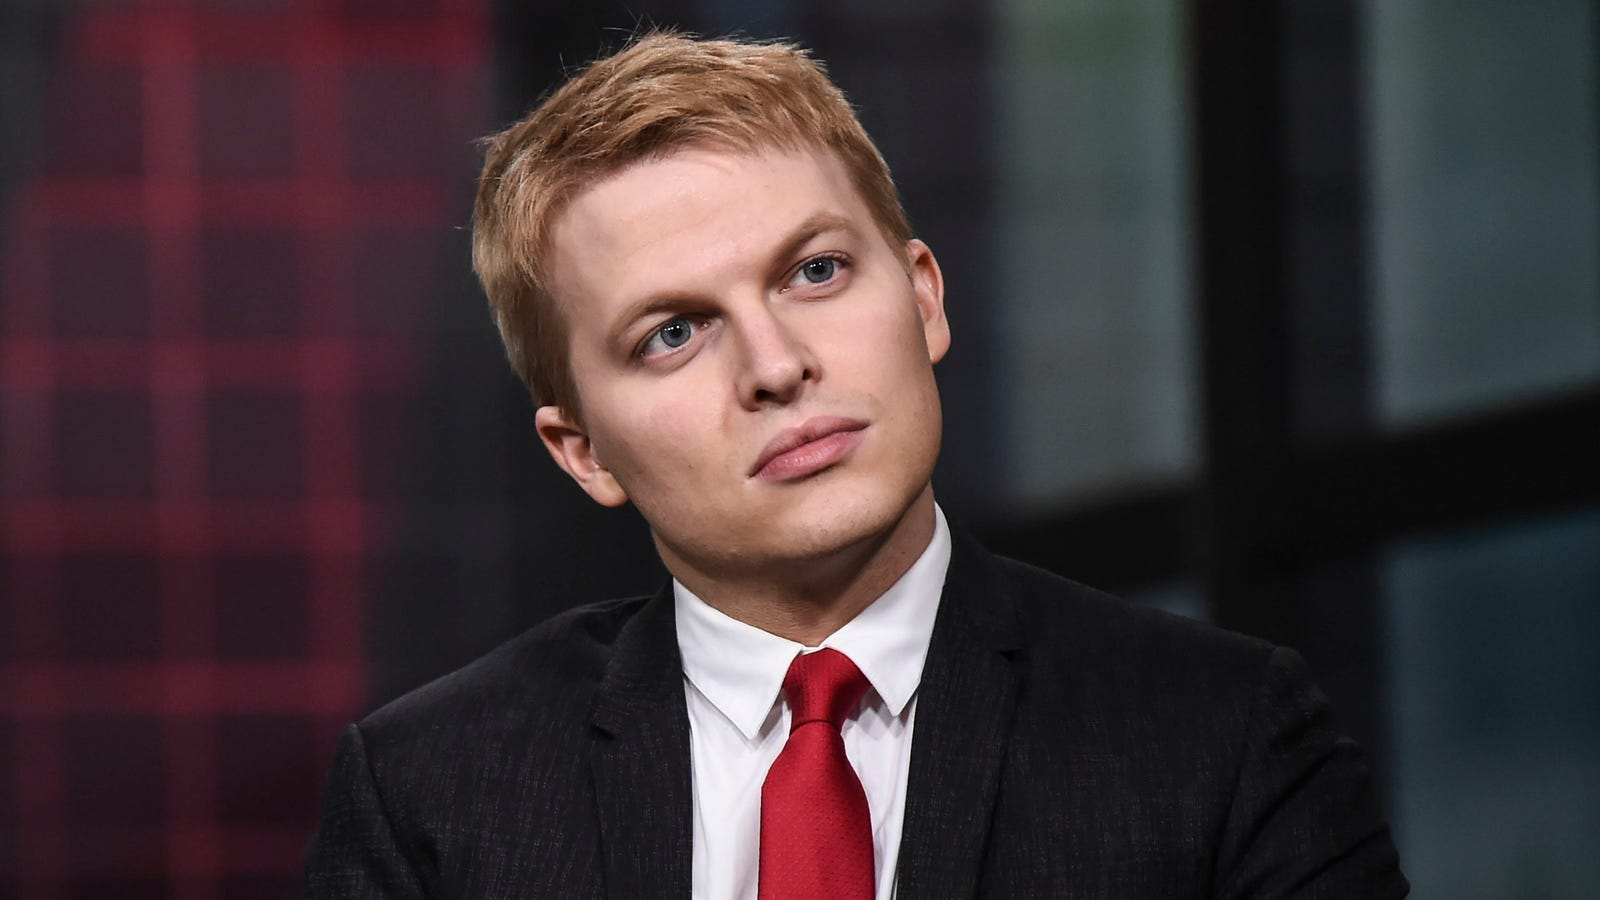 Ronan Farrow's old news producer accuses NBC of pressuring him to kill the Harvey Weinstein story